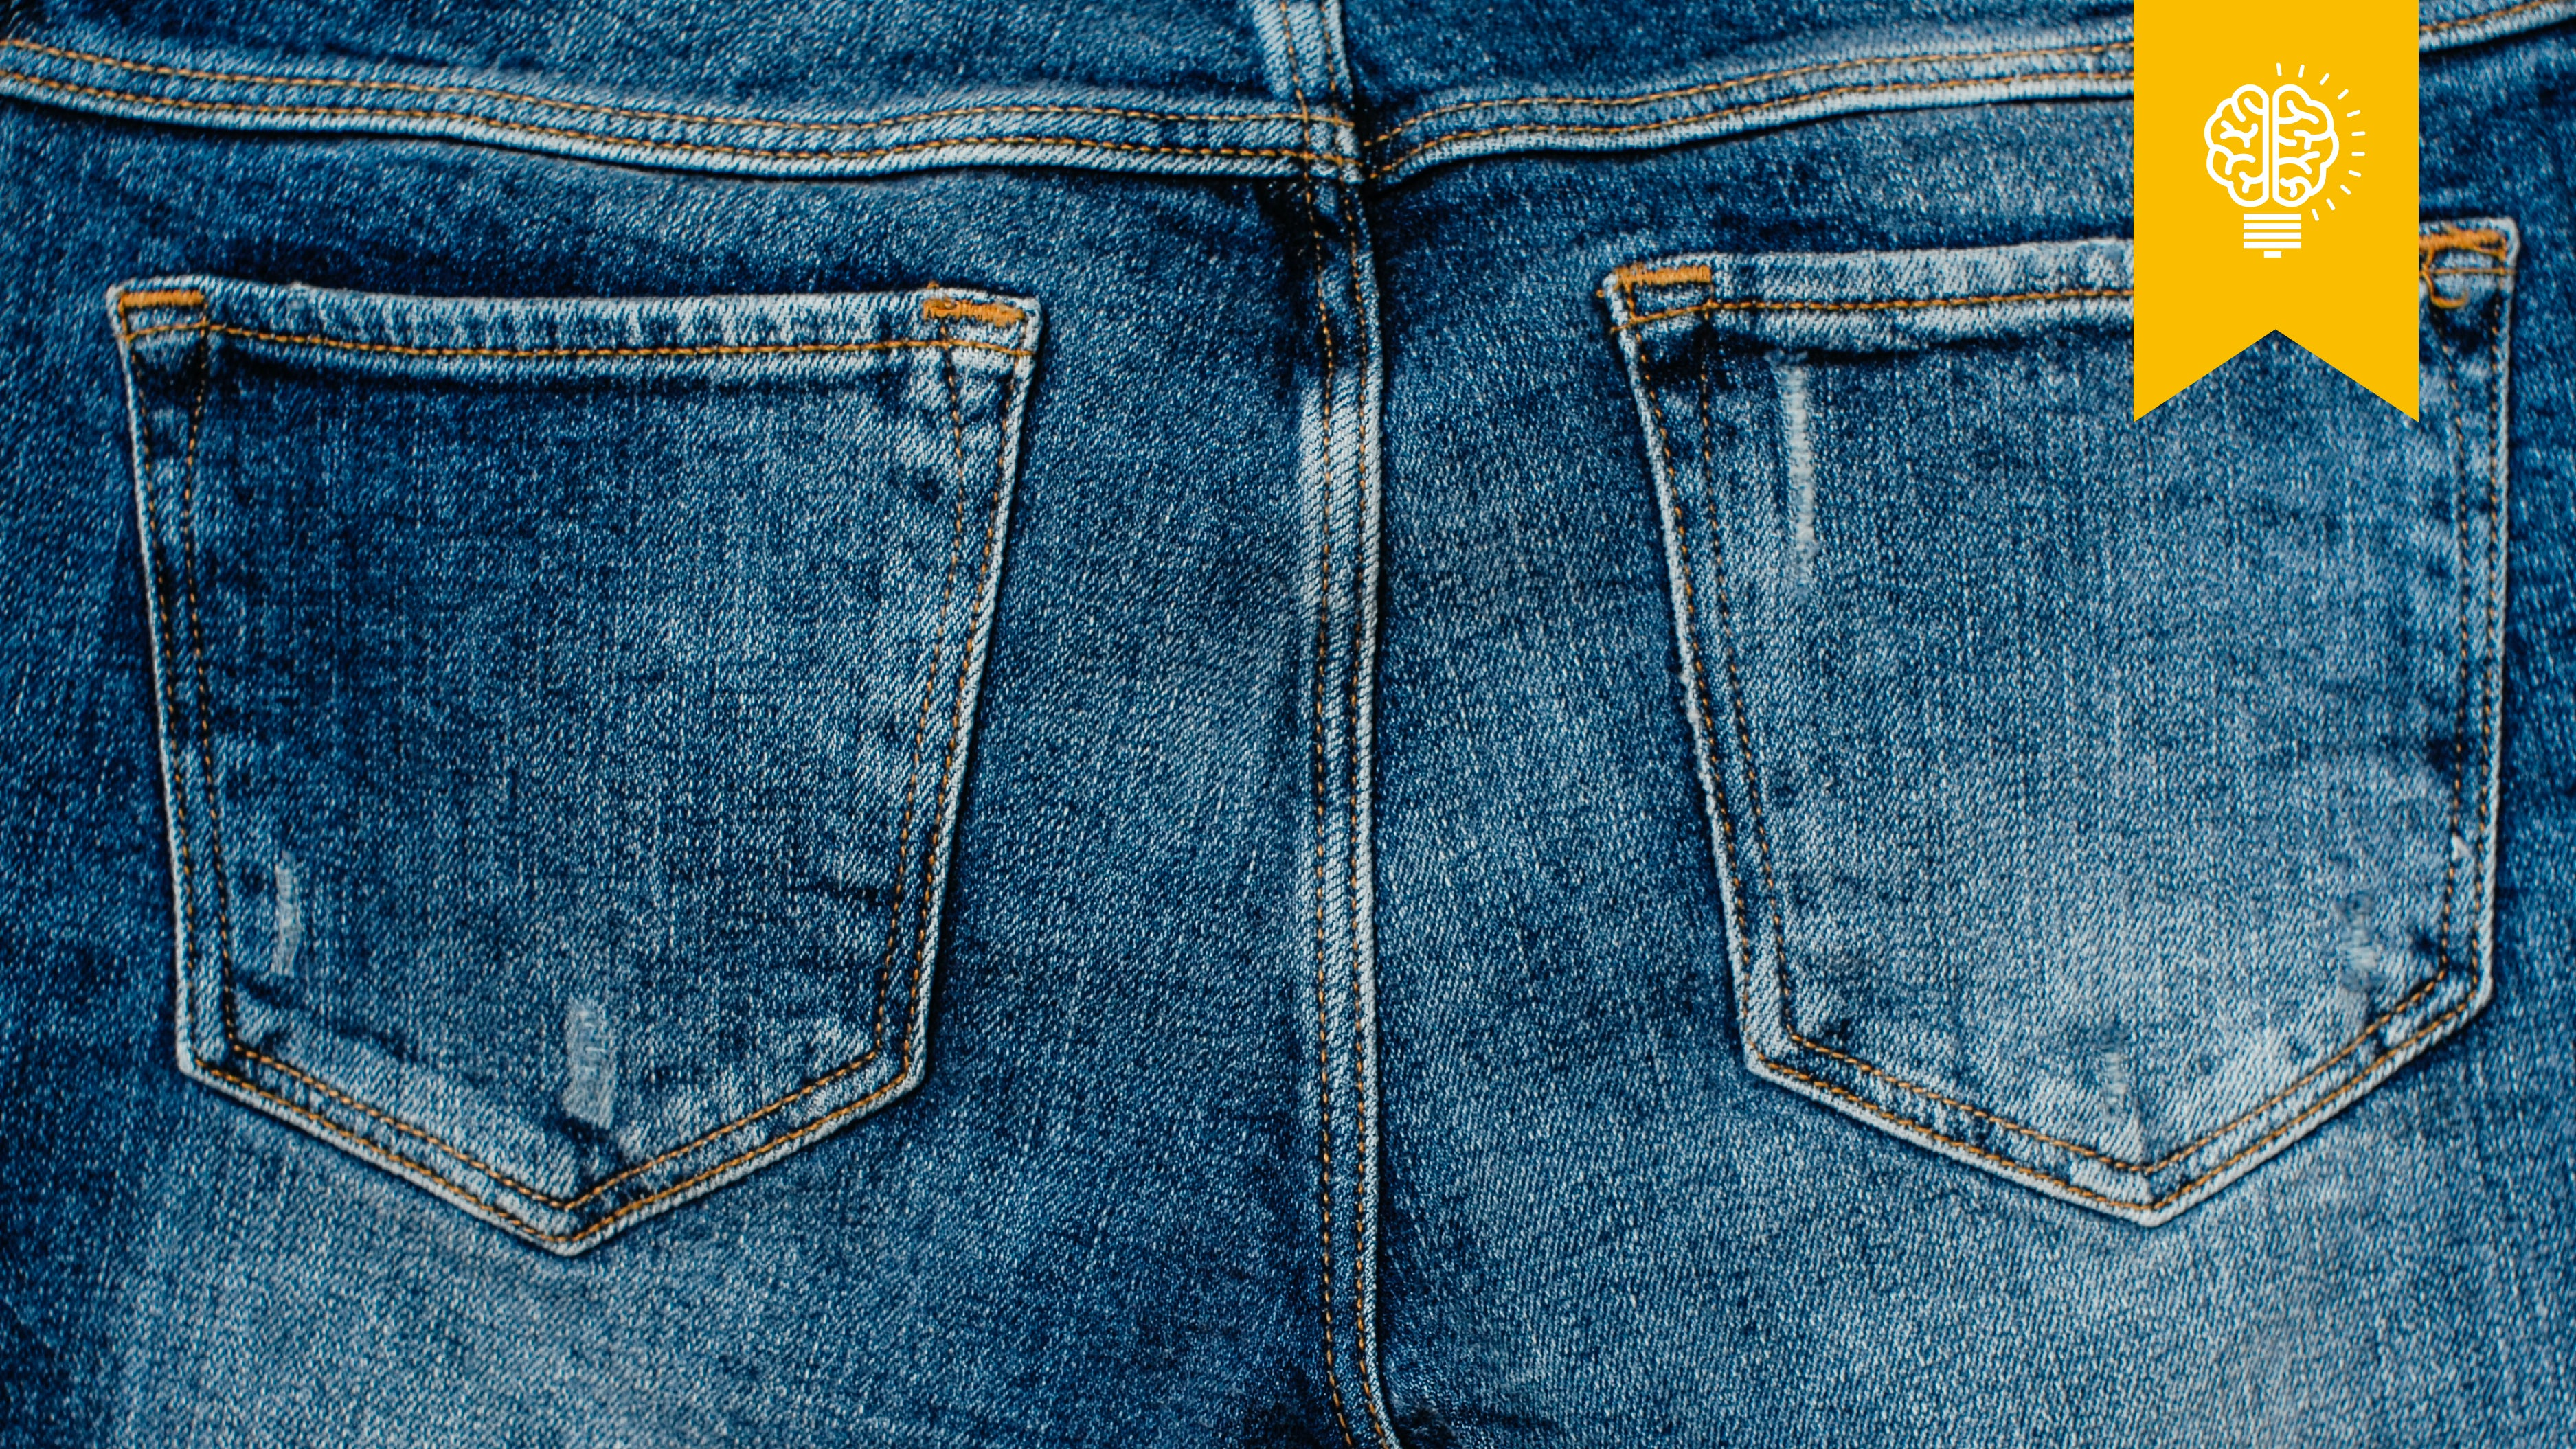 How Denim Brands Can Stay Cool